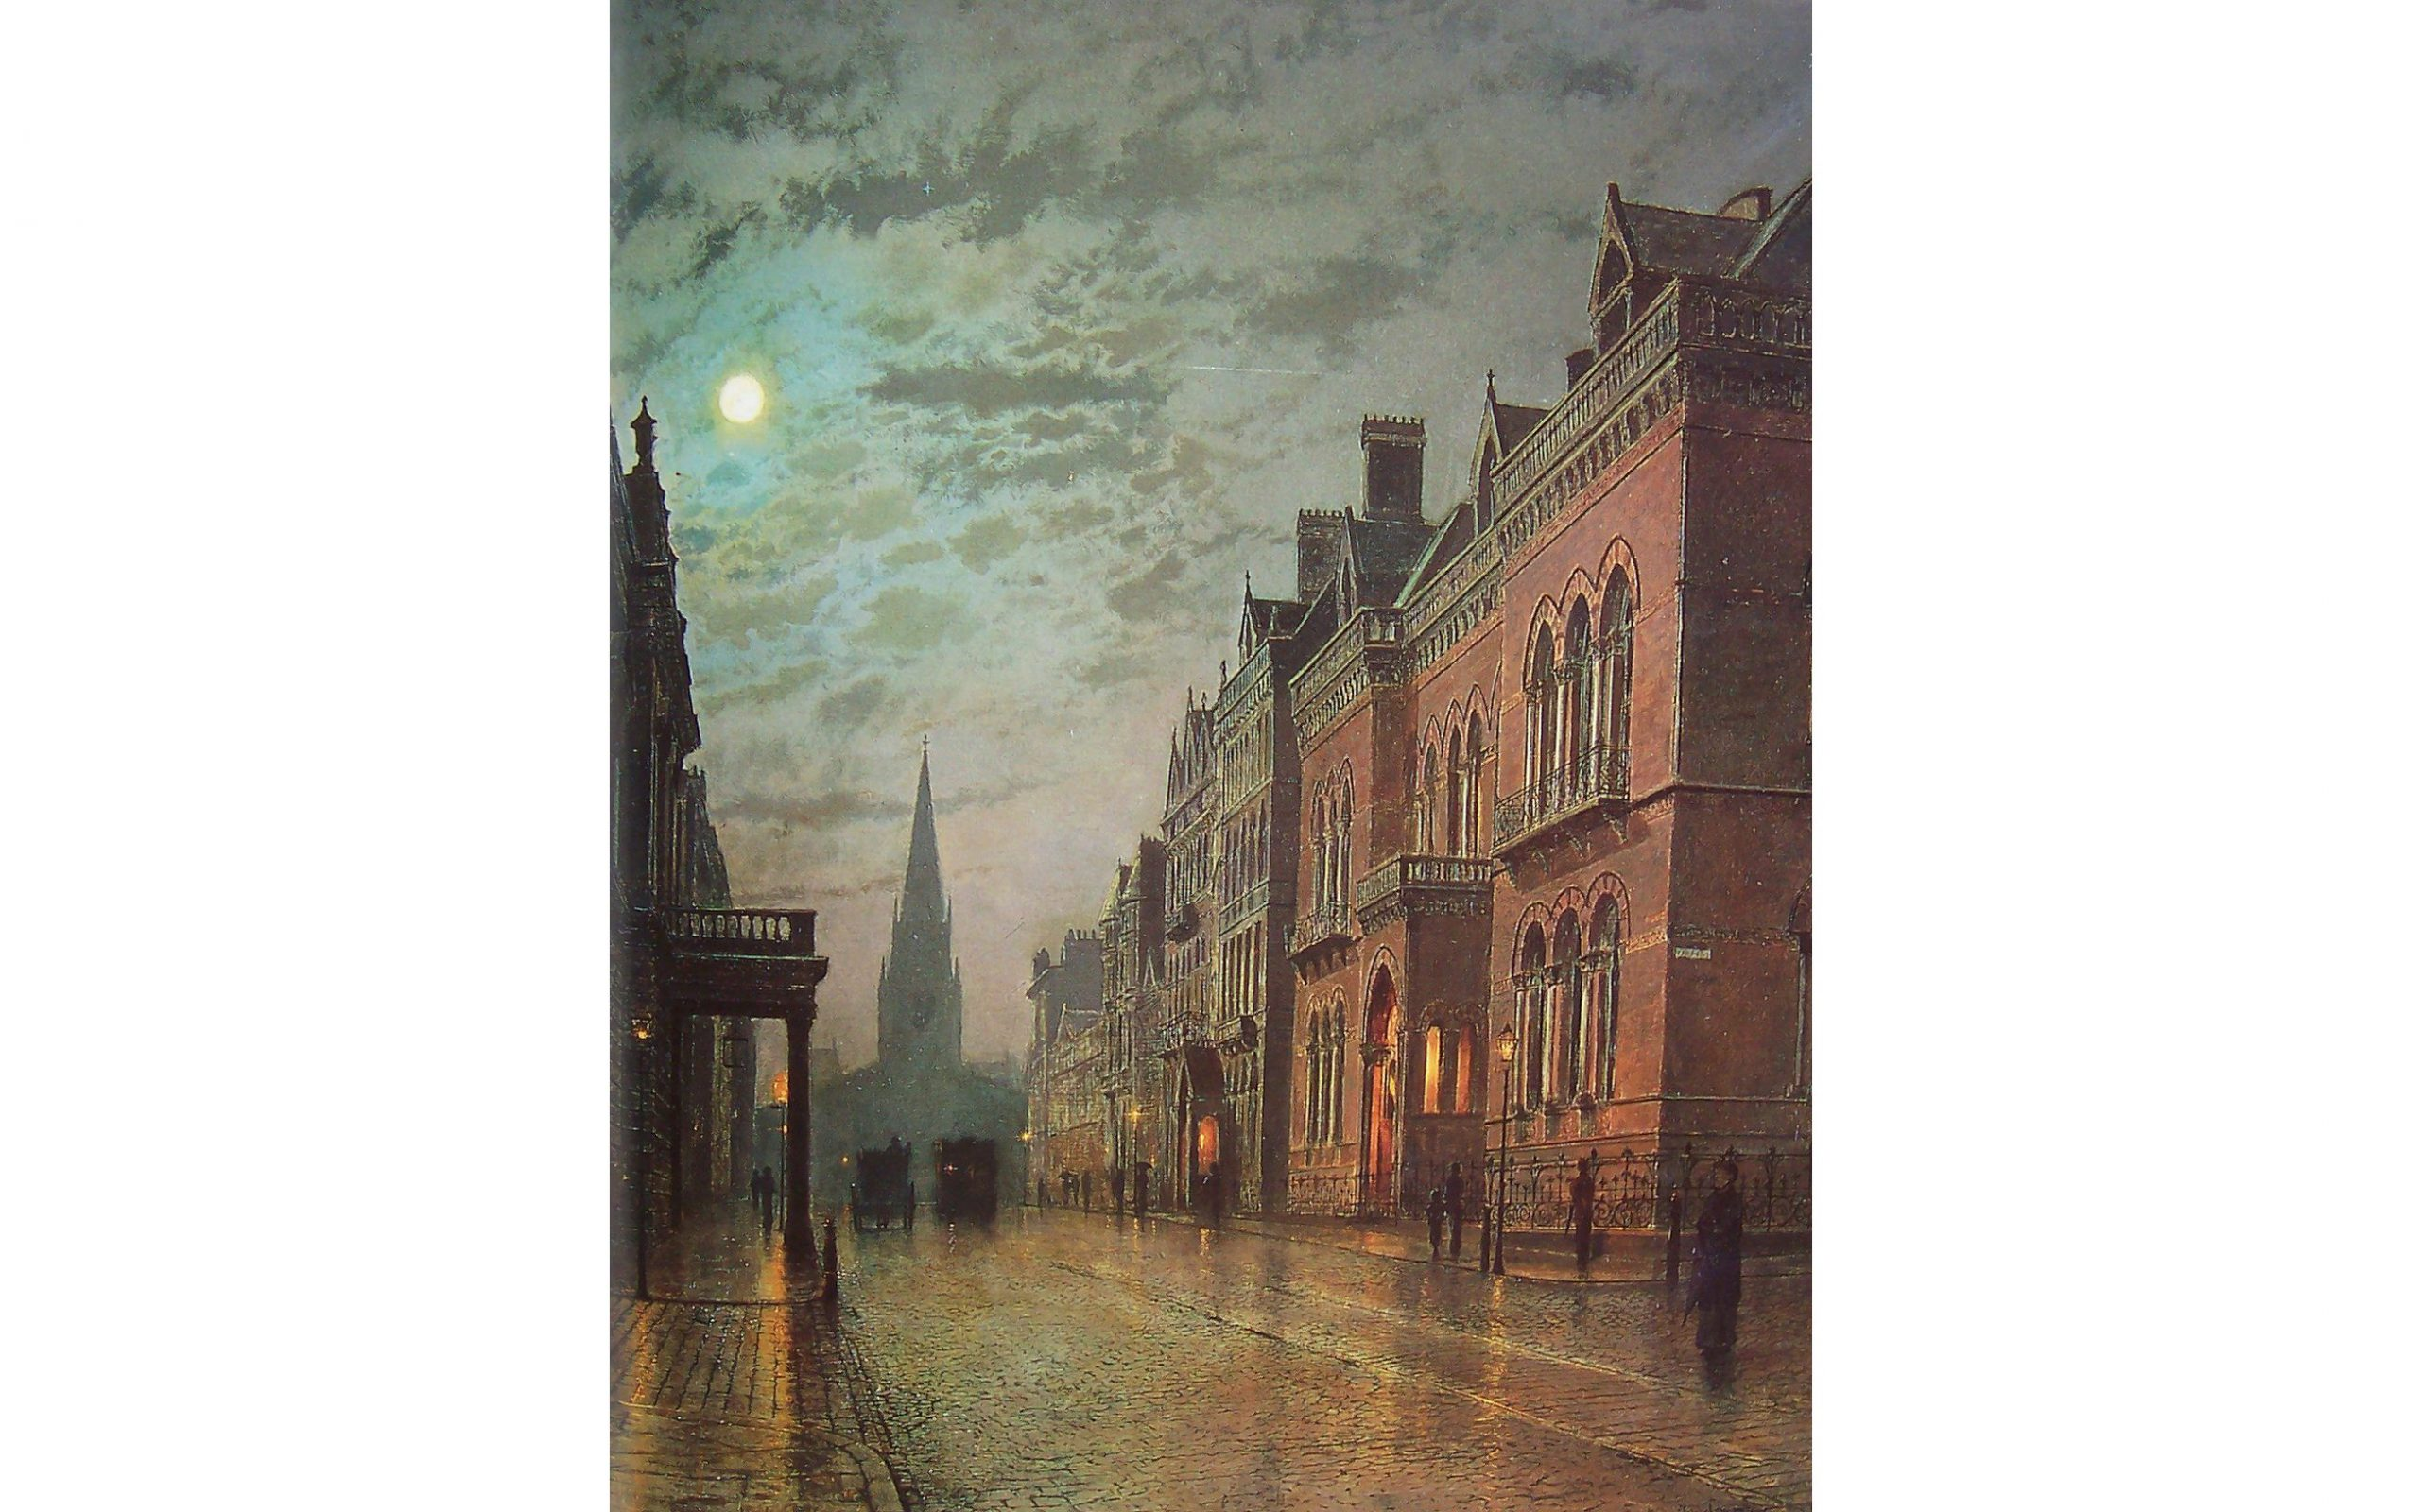 'Park Row, 1882' by Leeds artist John Atkinson Grimshaw (1836-1893). The new portico of Philosophical Hall is on the left – the west side of the street. ©Leeds Art Gallery